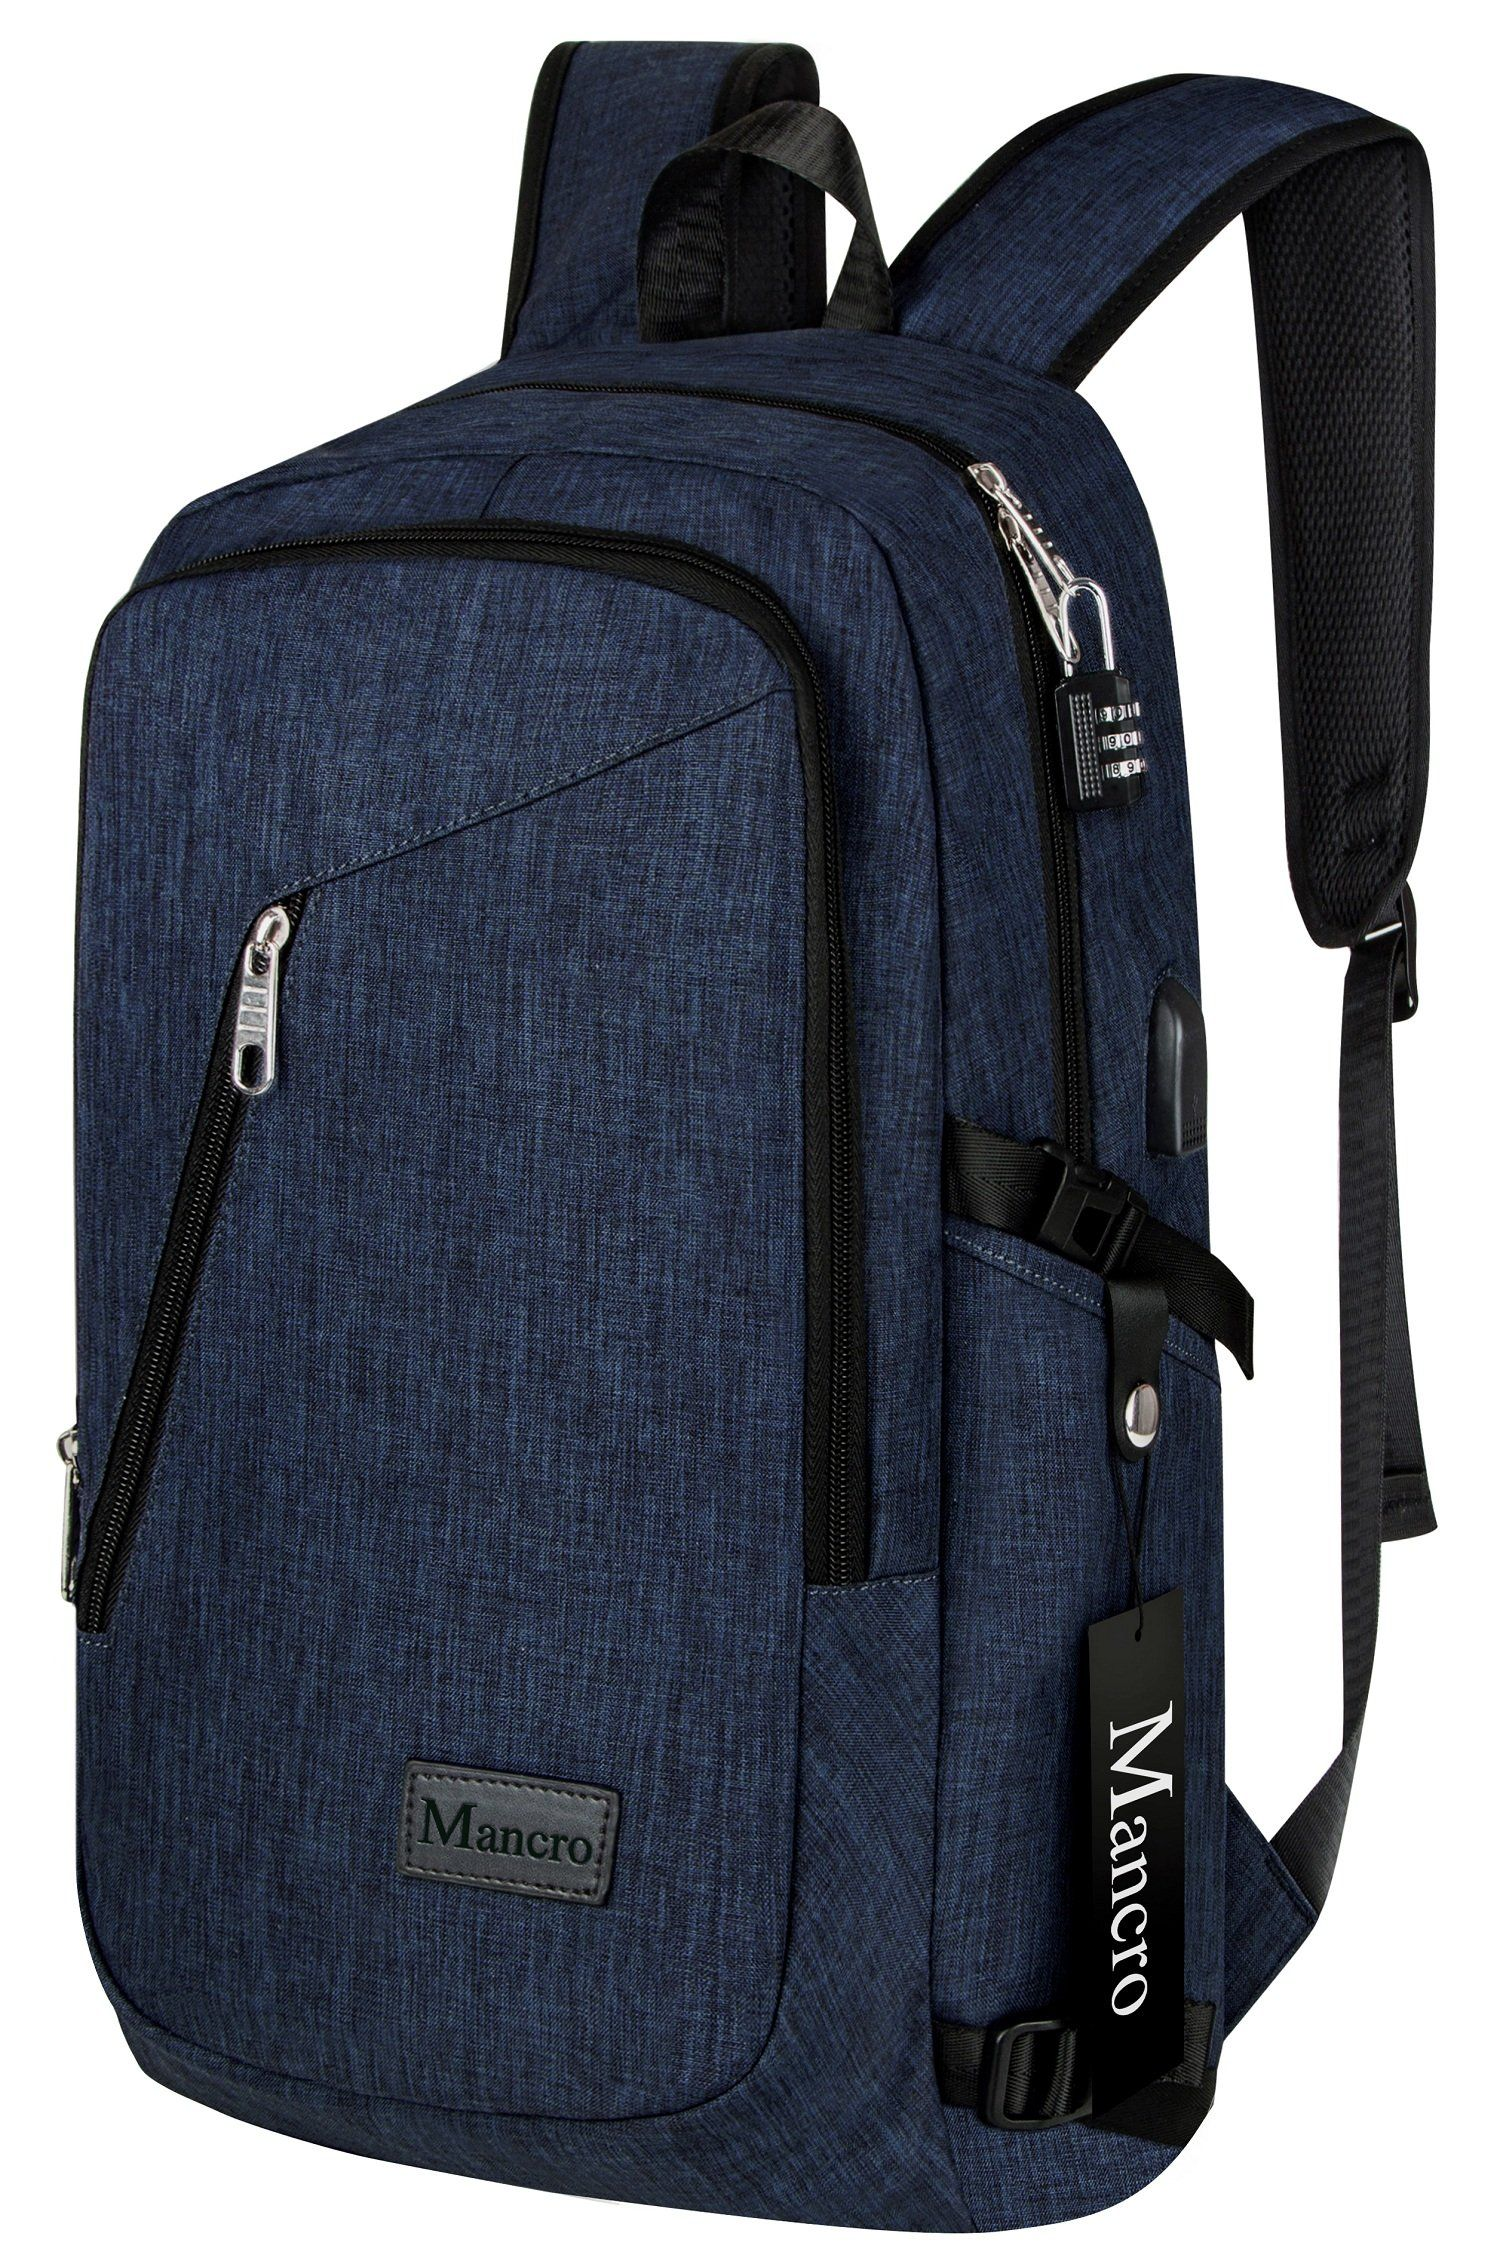 College Backpack, Business Slim Laptop Backpack, Mancro Anti-theft ...